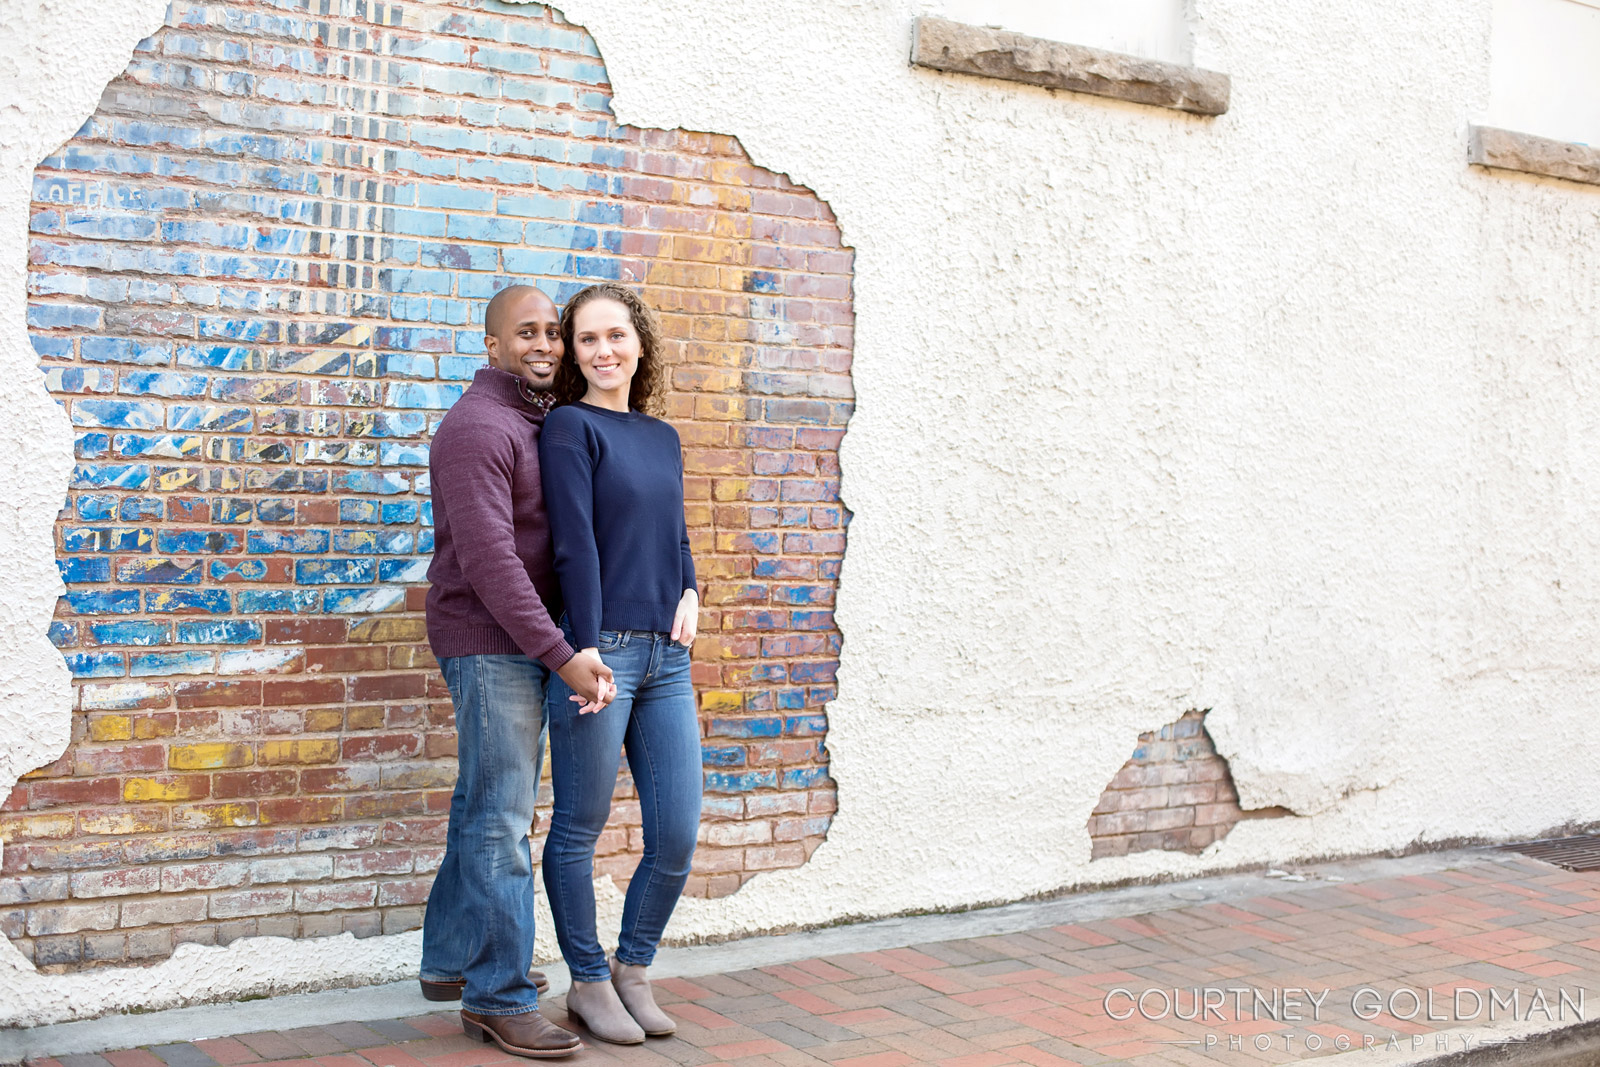 Atlanta-Couples-Engagement-Proposal-Photography-by-Courtney-Goldman-08.jpg